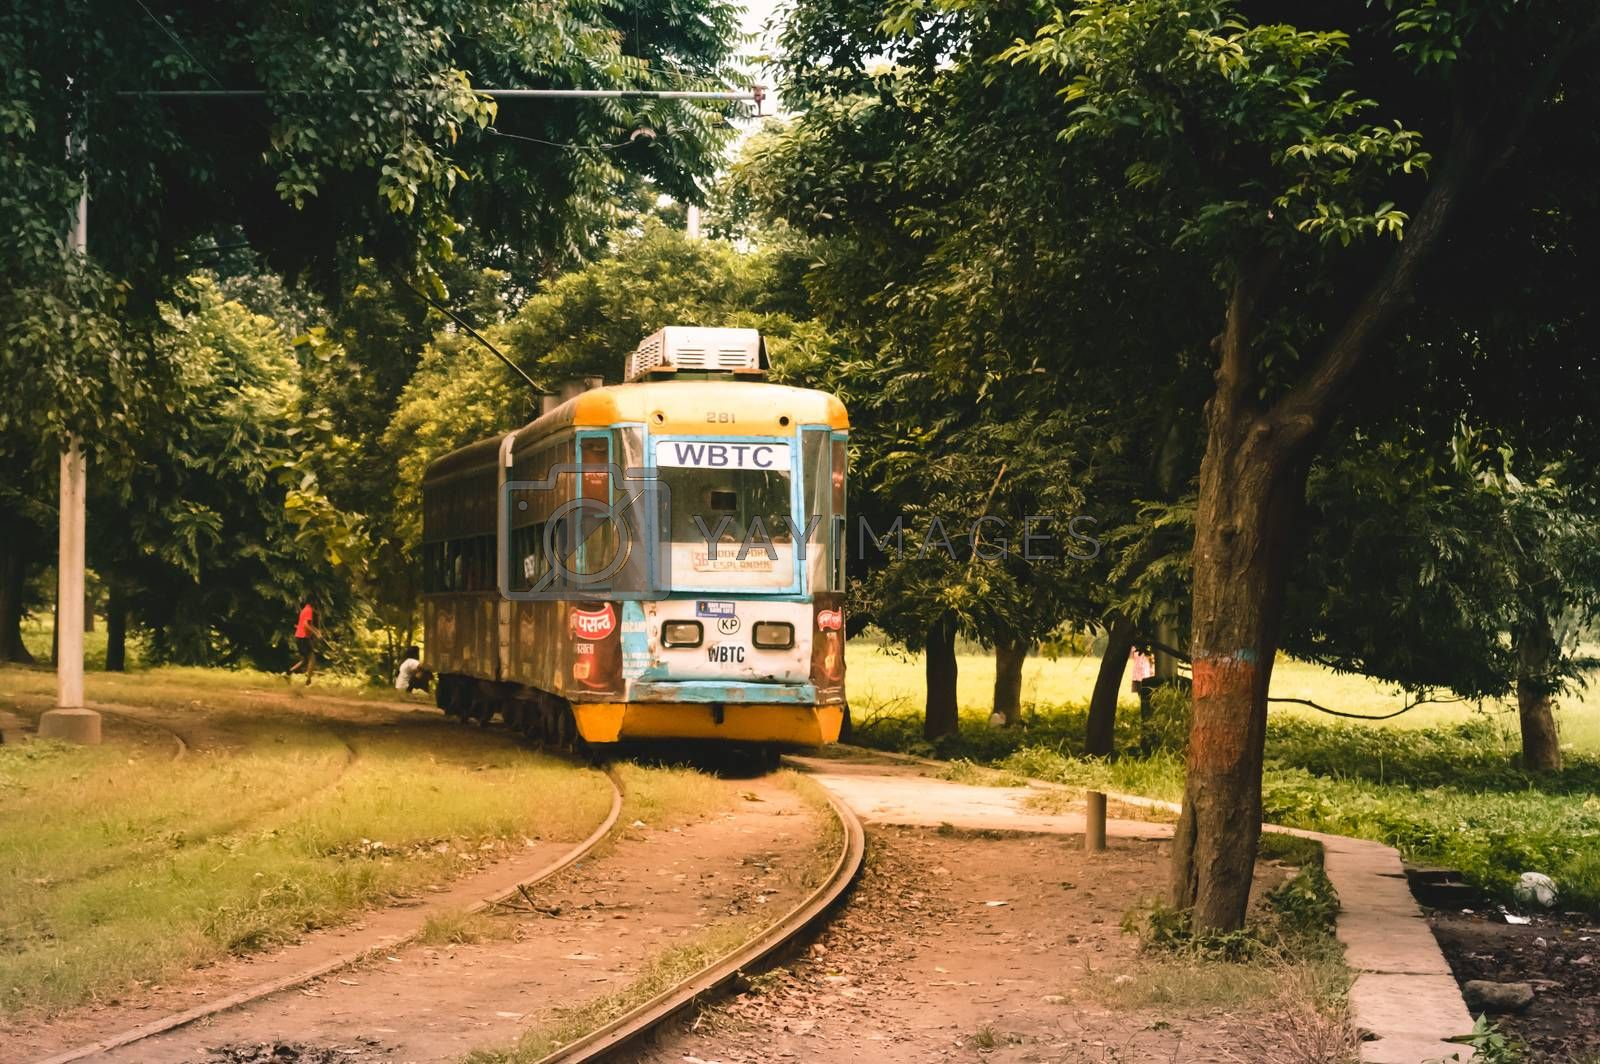 View of traditional public tram and tramway of kolkata, India.